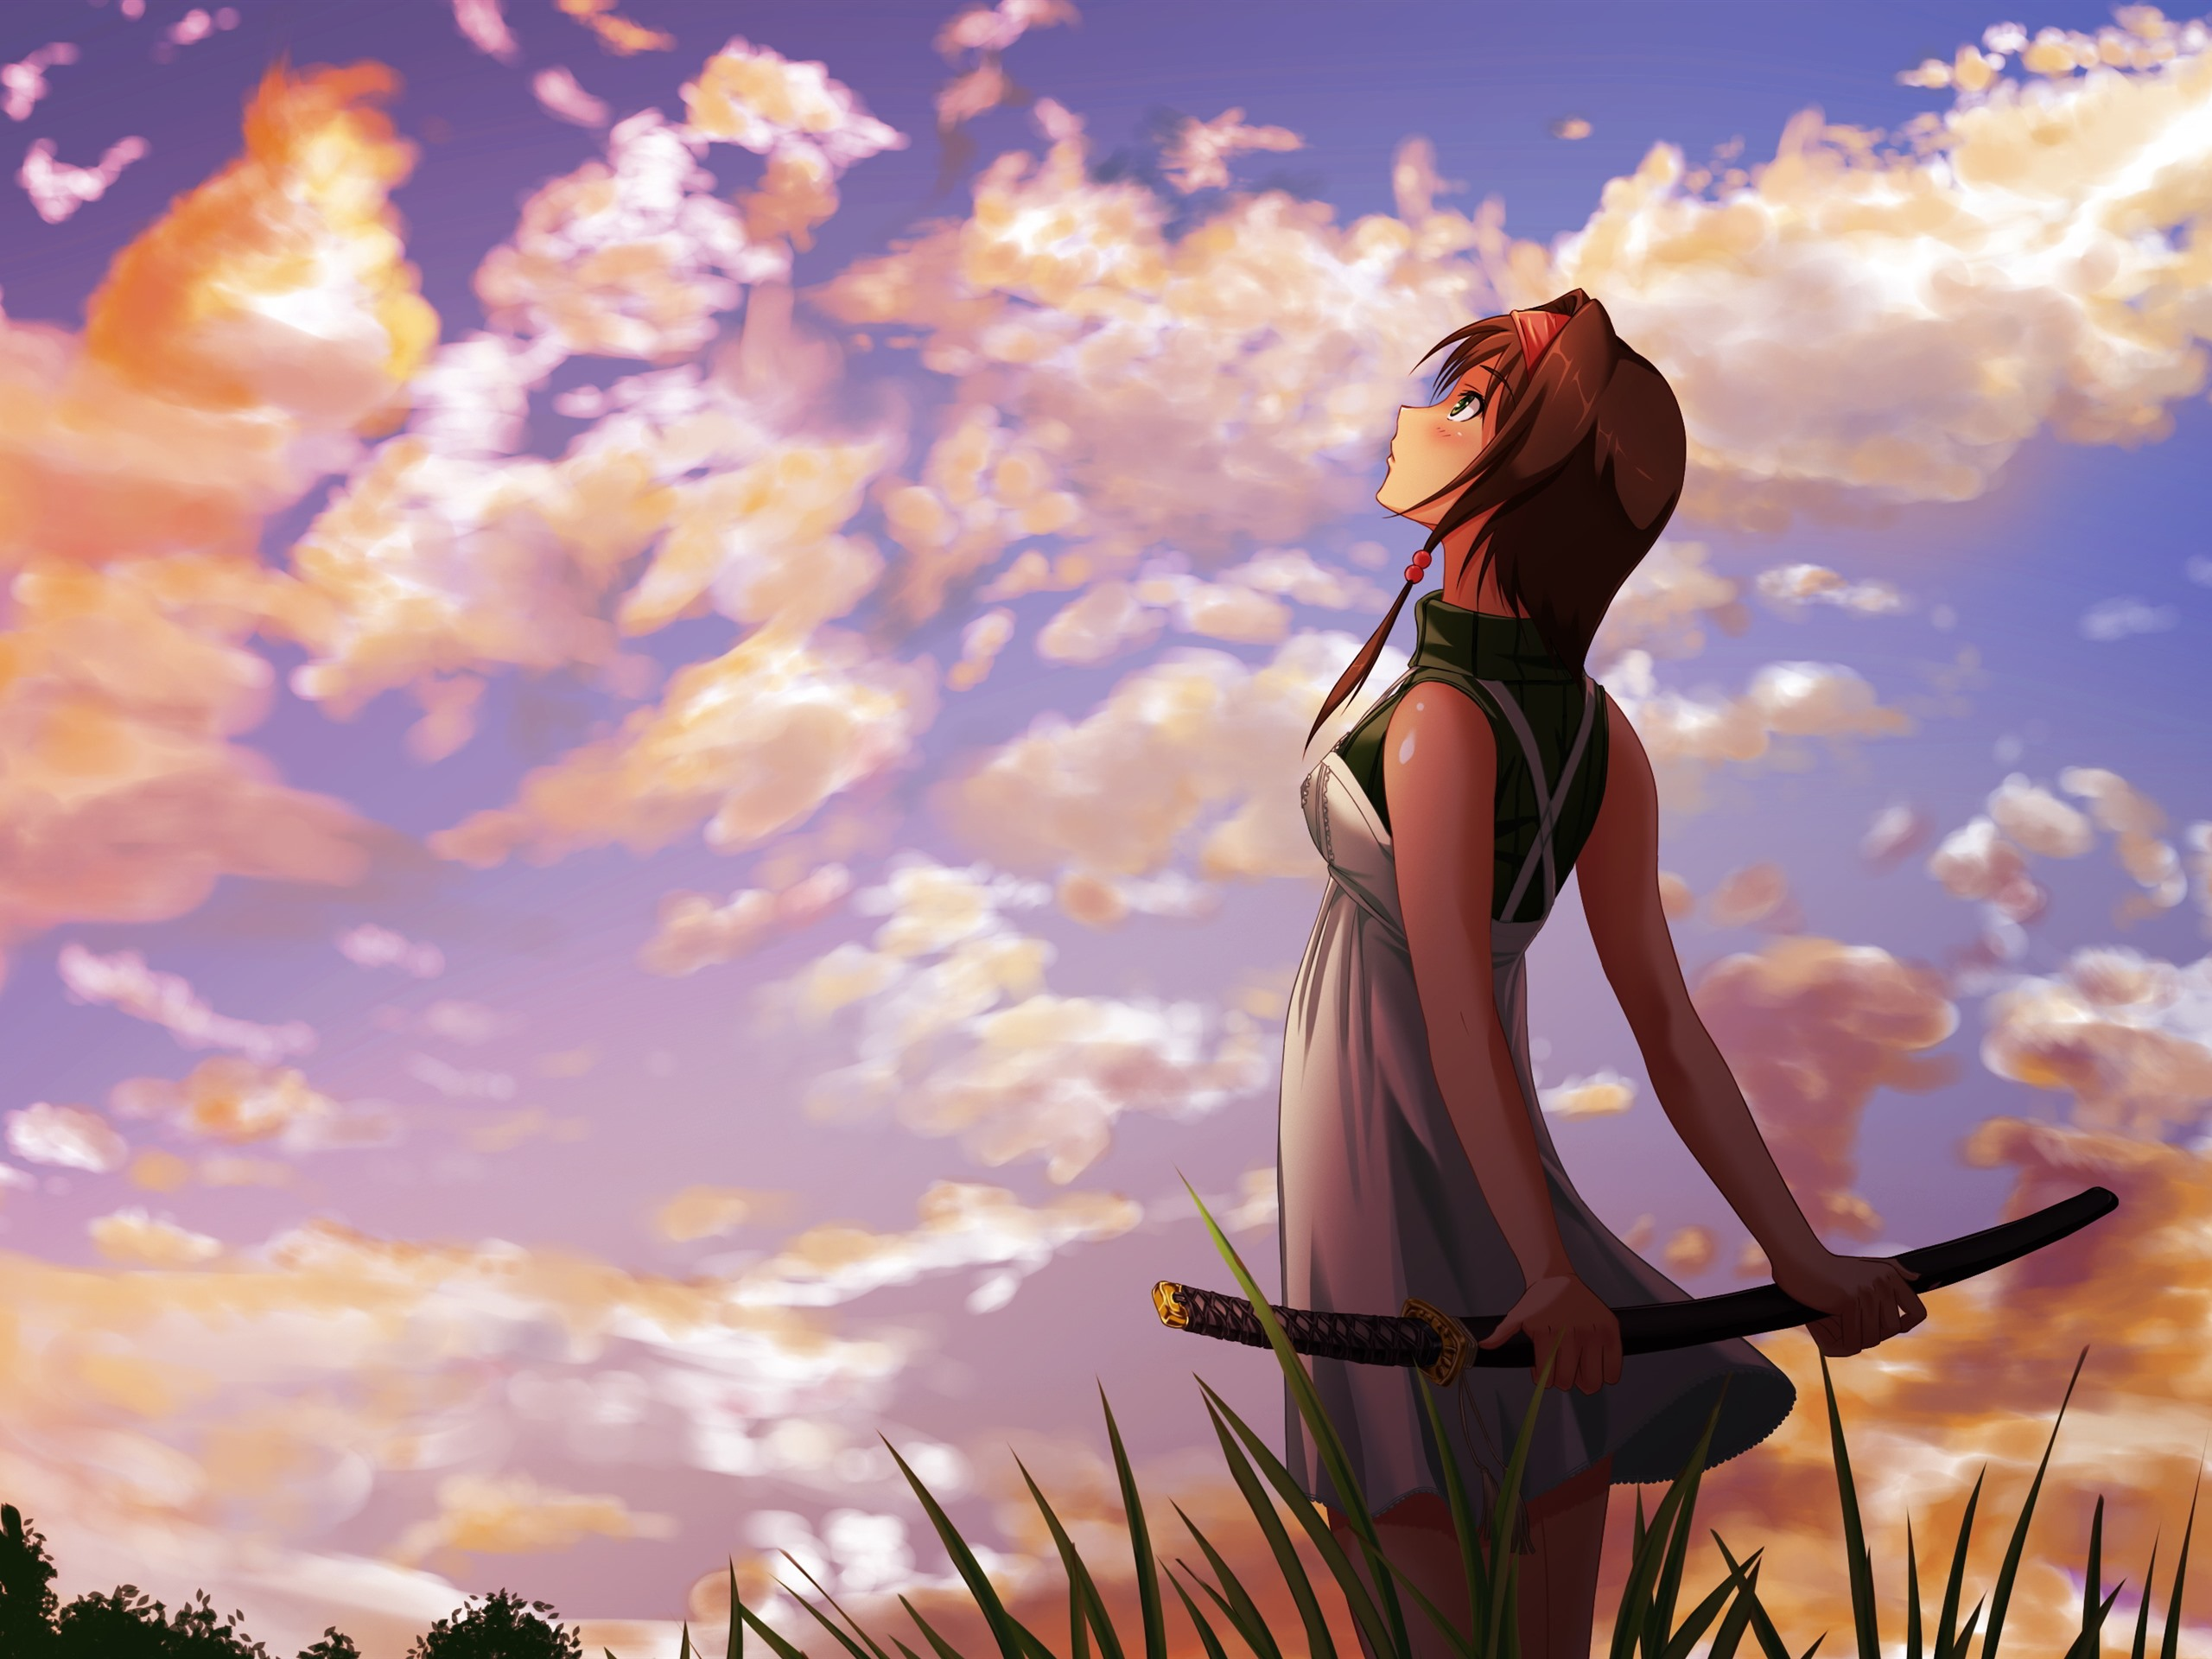 Wallpaper Anime Girl Look At Sky Katana Clouds Sunset 2880x1800 Hd Picture Image